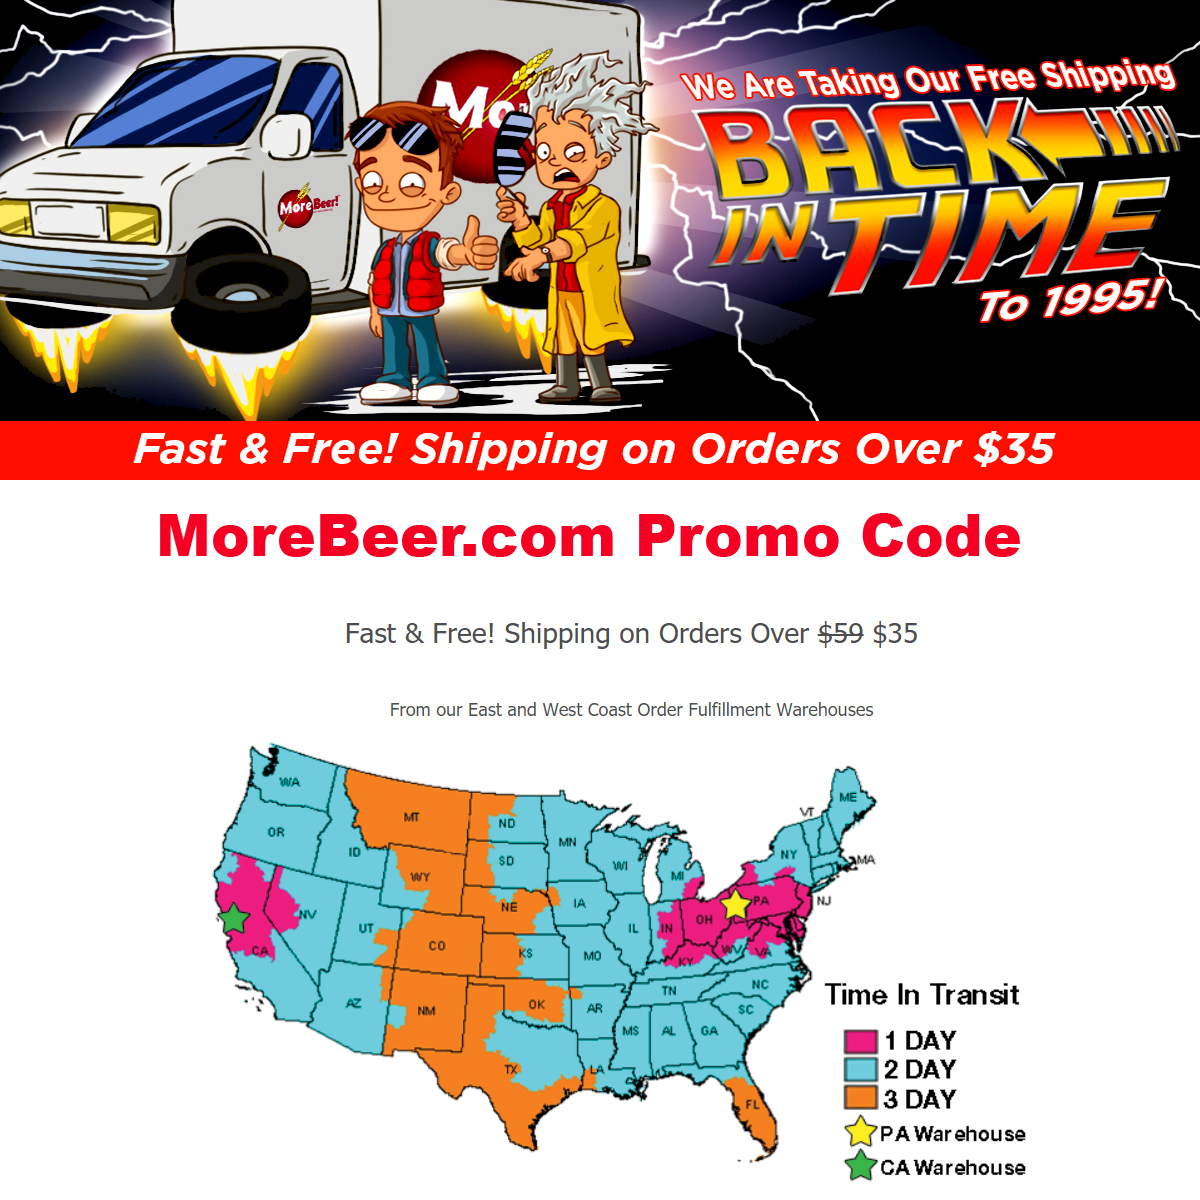 Home Wine Making Coupon Codes for Get free shipping at MoreBeer.com on orders over $35 Coupon Code Coupon Code